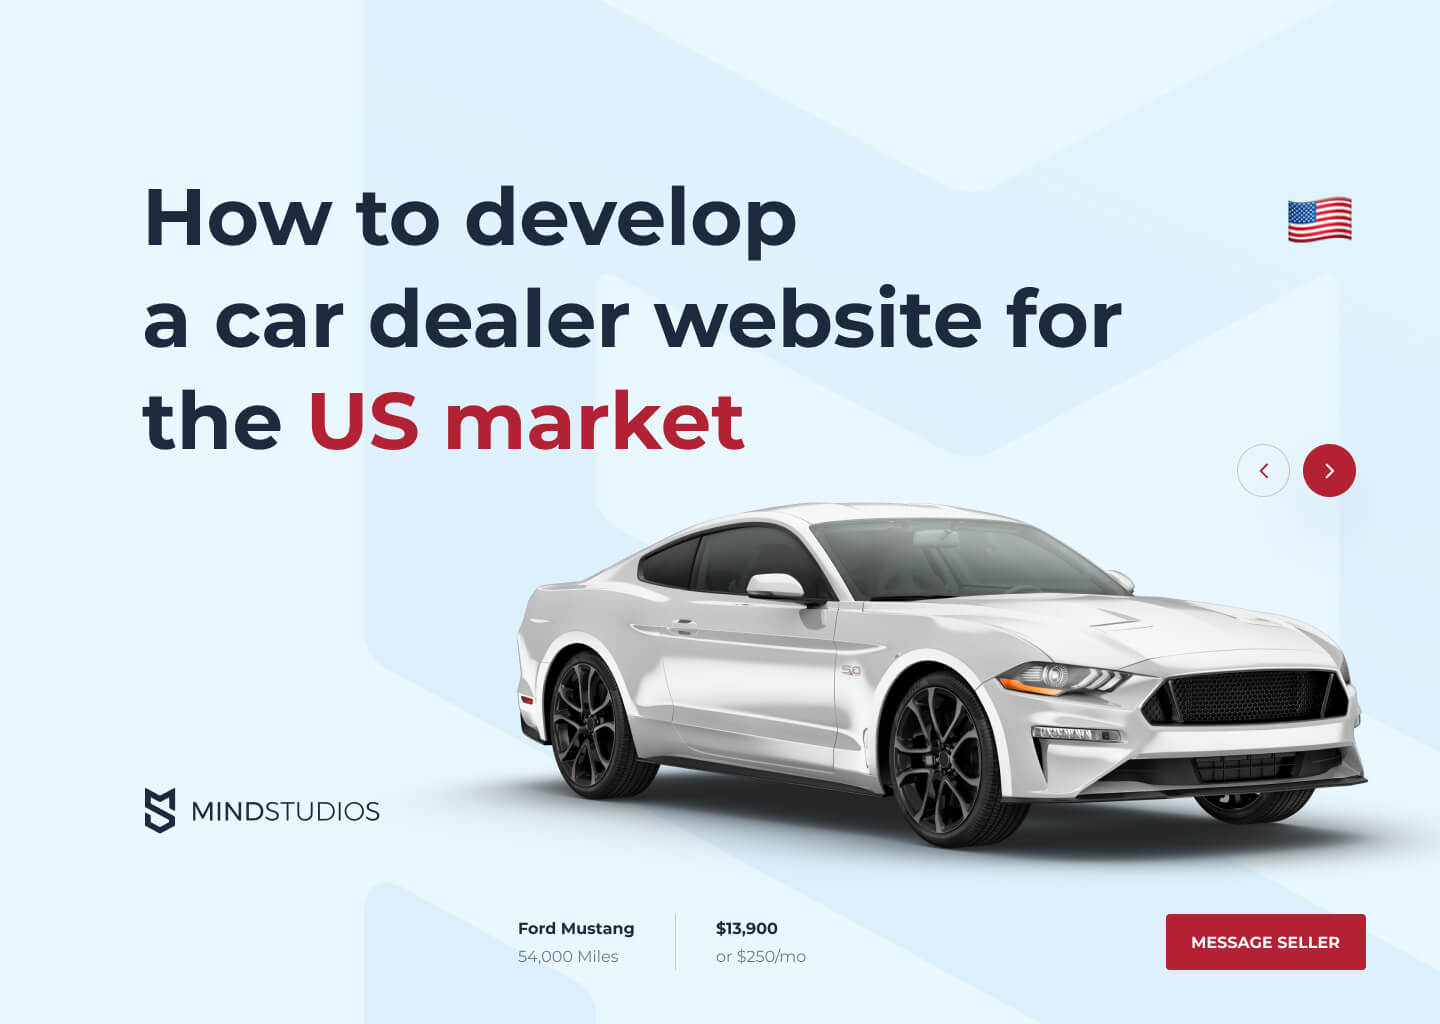 How to Develop a Car Dealer Website for the US Market